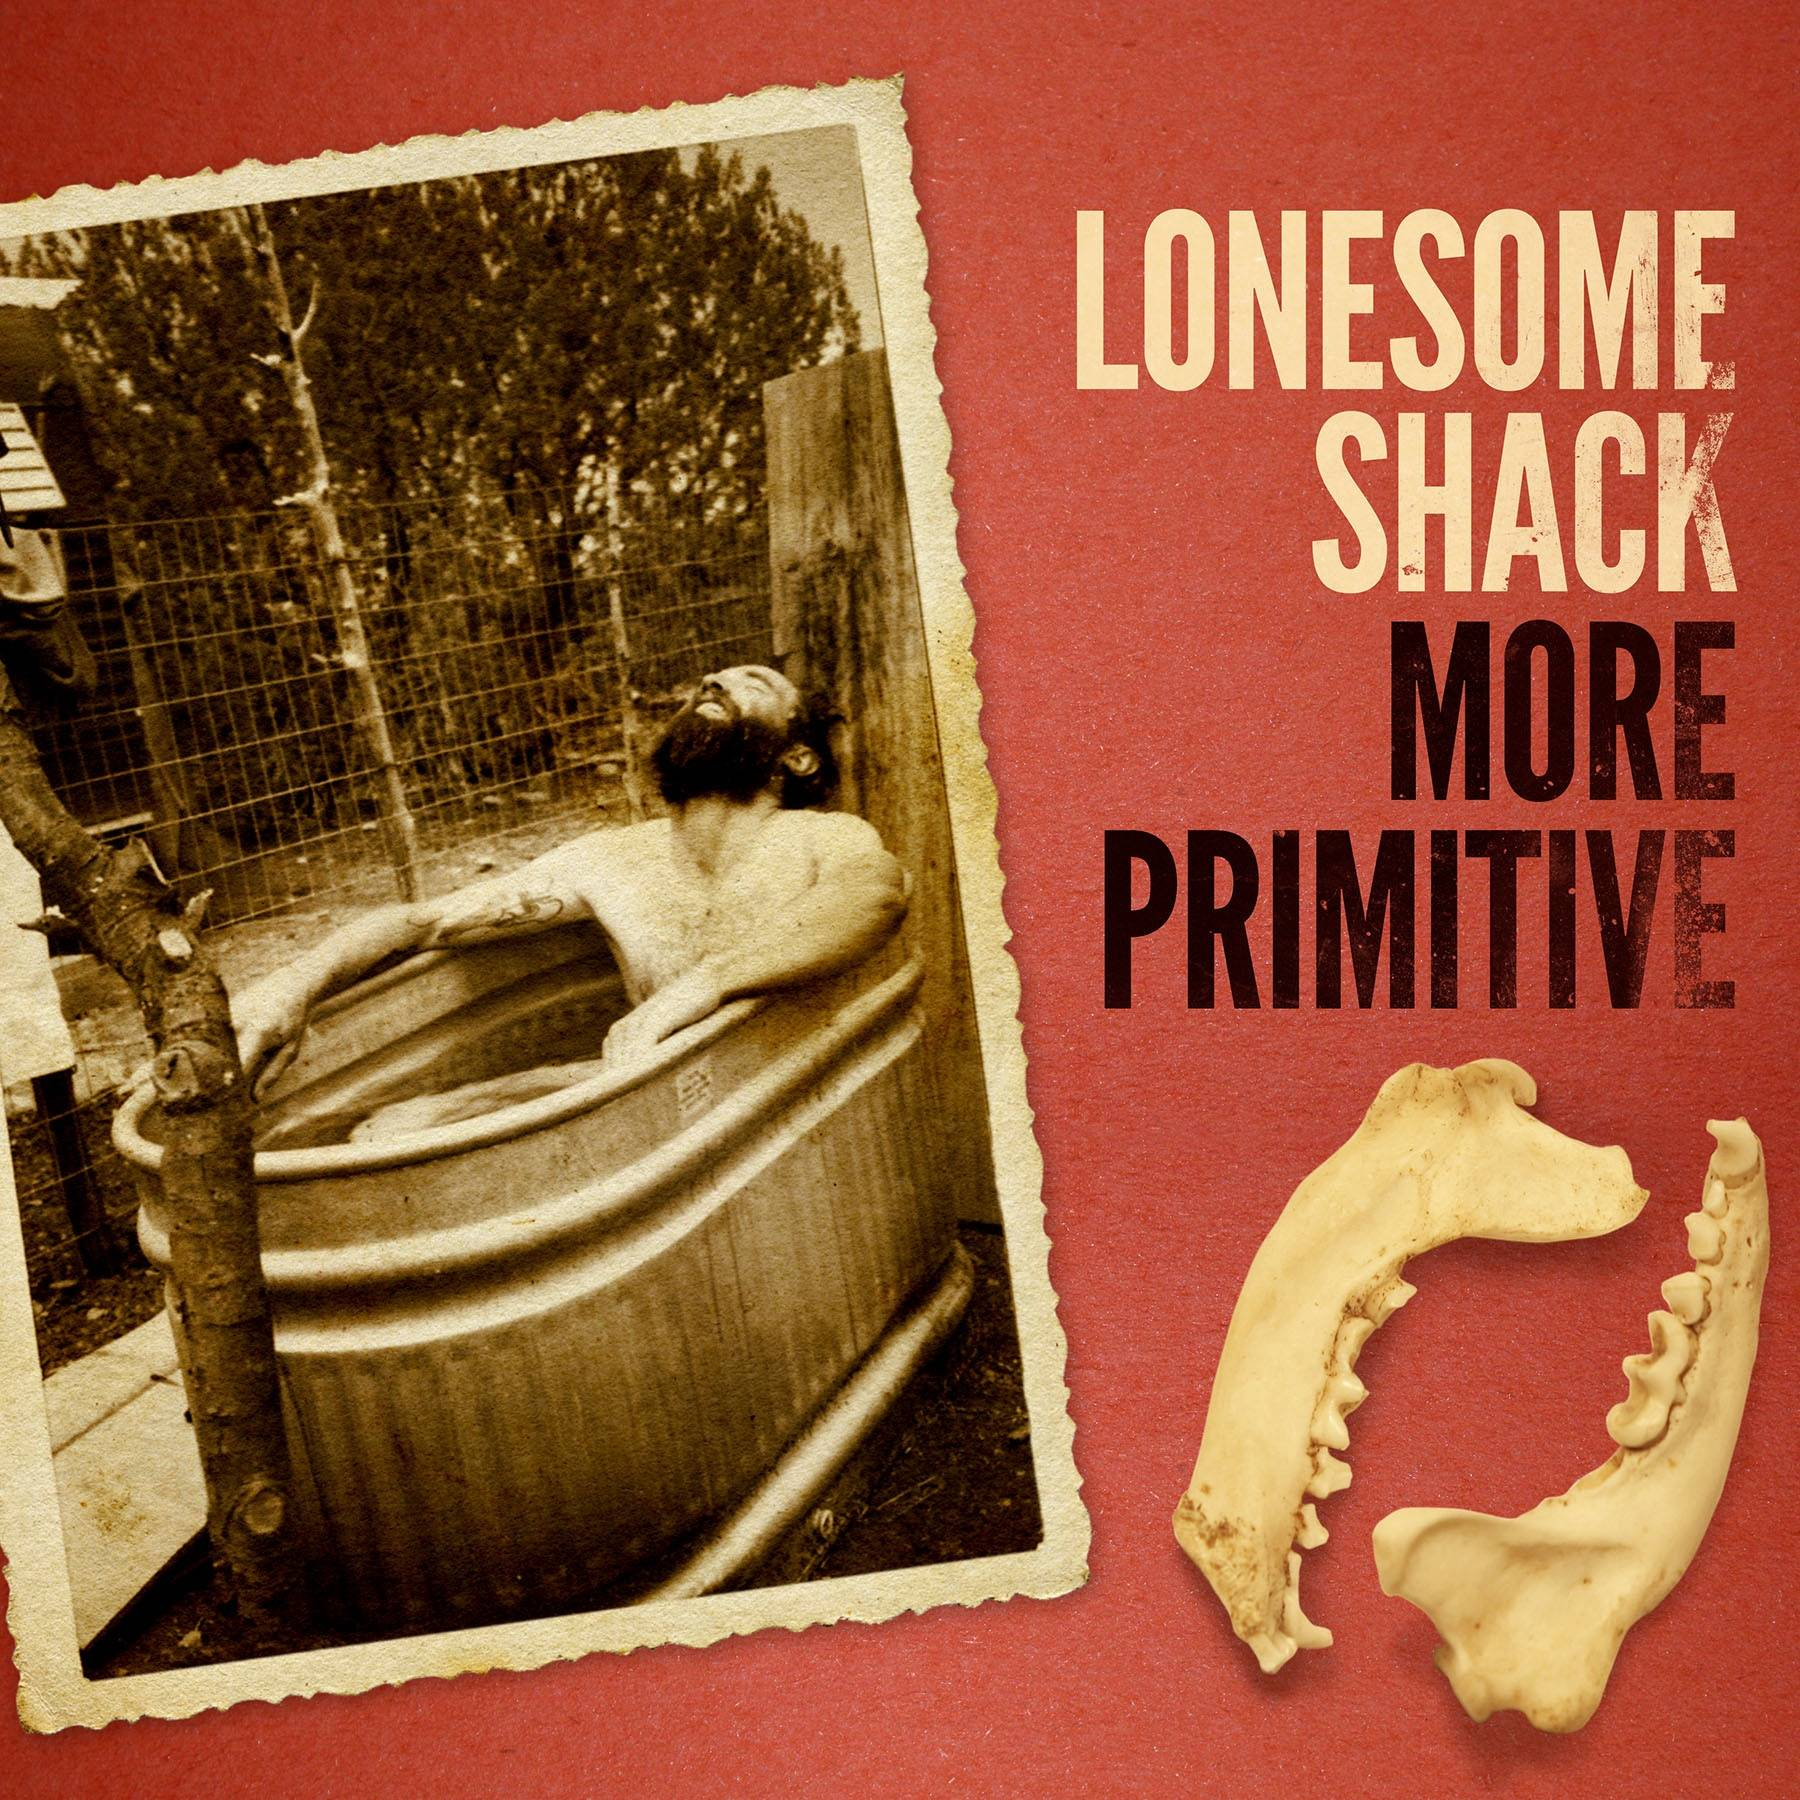 """More Primitive"" by Lonesome Shack has an authentic blues feel to it."